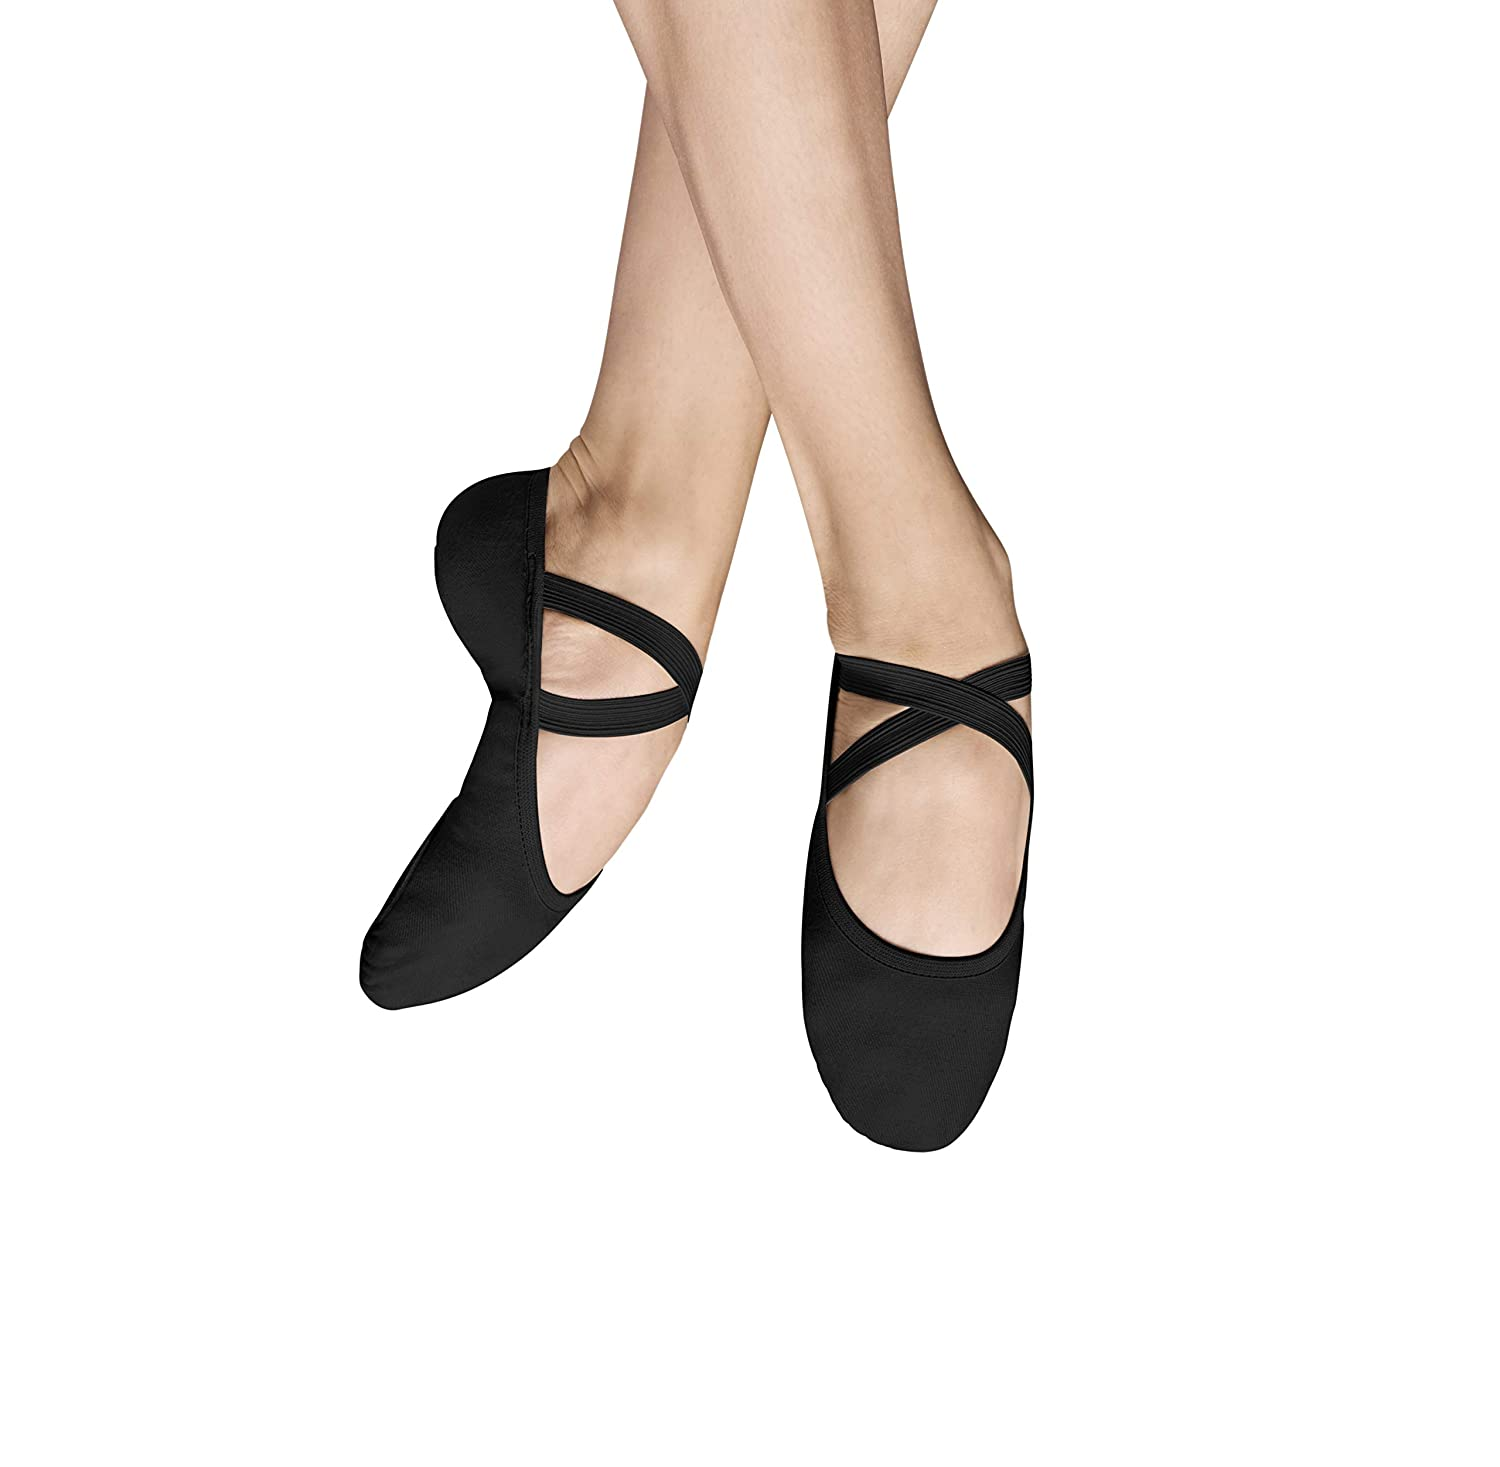 【★超目玉】 [Bloch] Performa US Ballet Shoe 5.5 Fabric Flat [Bloch] B07B33MHZ9 5.5 C US|ブラック ブラック 5.5 C US, 吉城郡:dee38c3c --- a0267596.xsph.ru